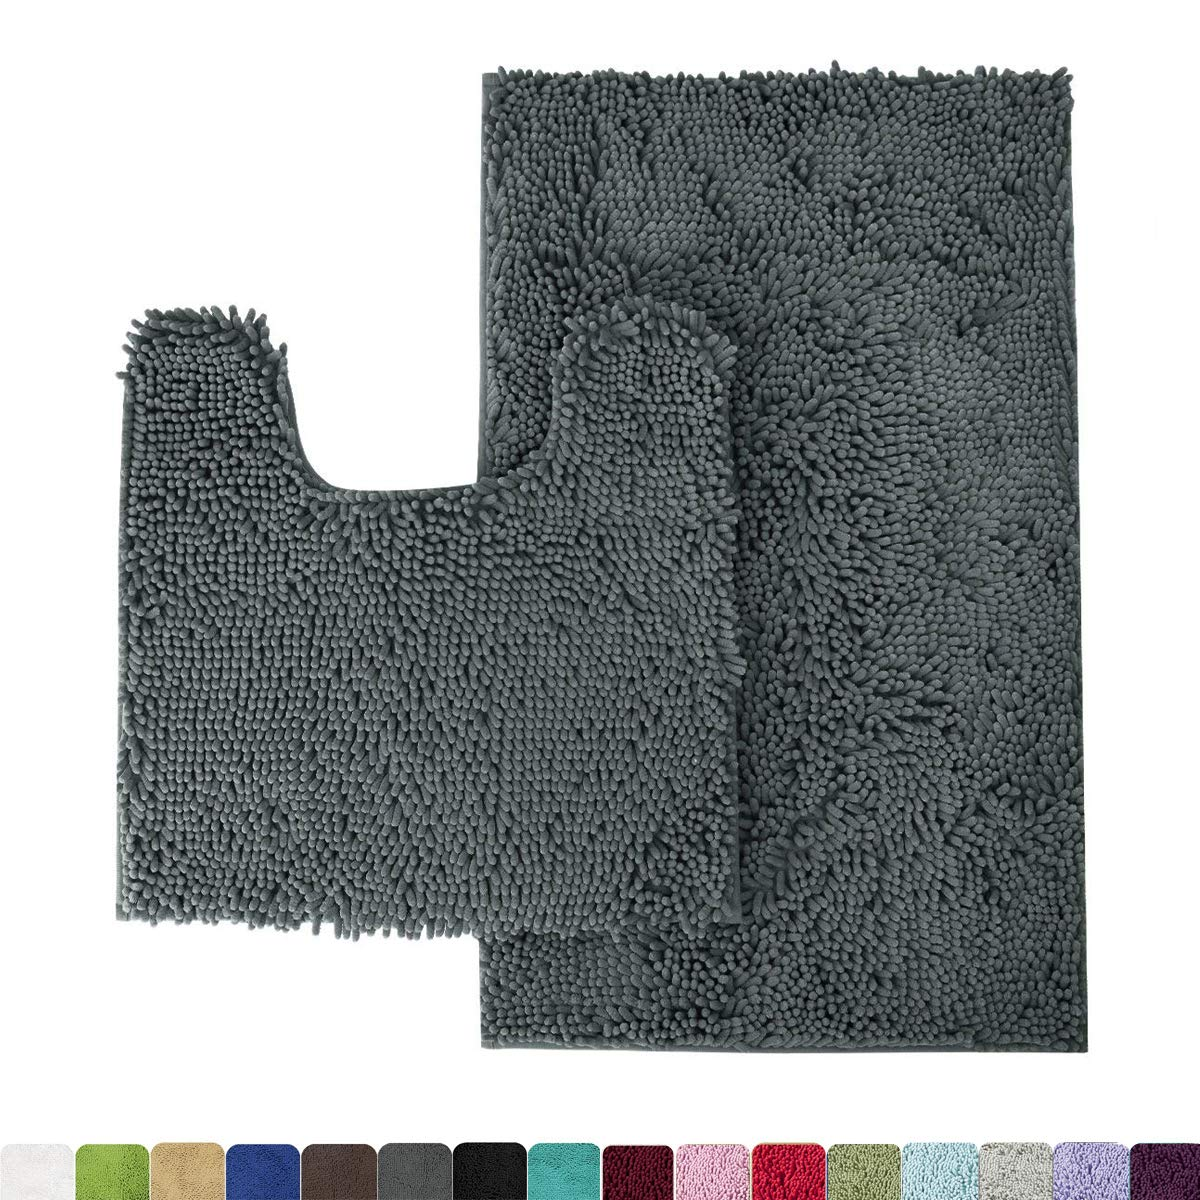 Best Rated In Bath Rugs Amp Helpful Customer Reviews